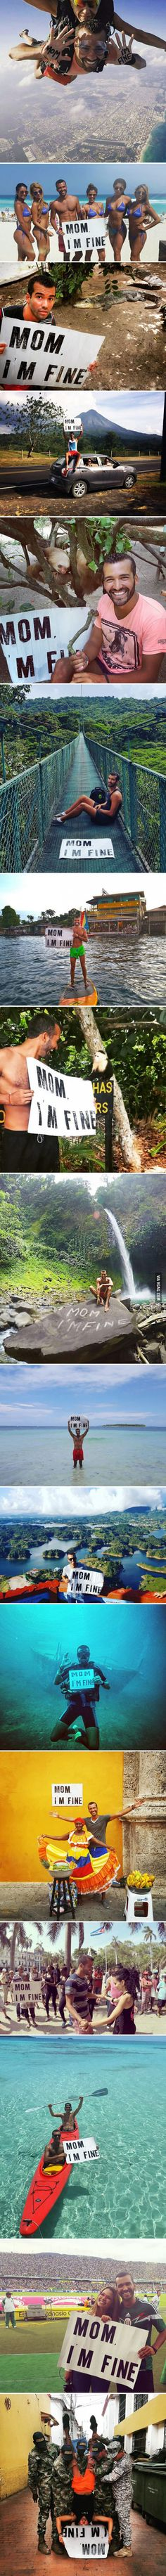 This Guy Drops Everything To Travel The World But Doesn't Forget To Assure His Mom He's Fine